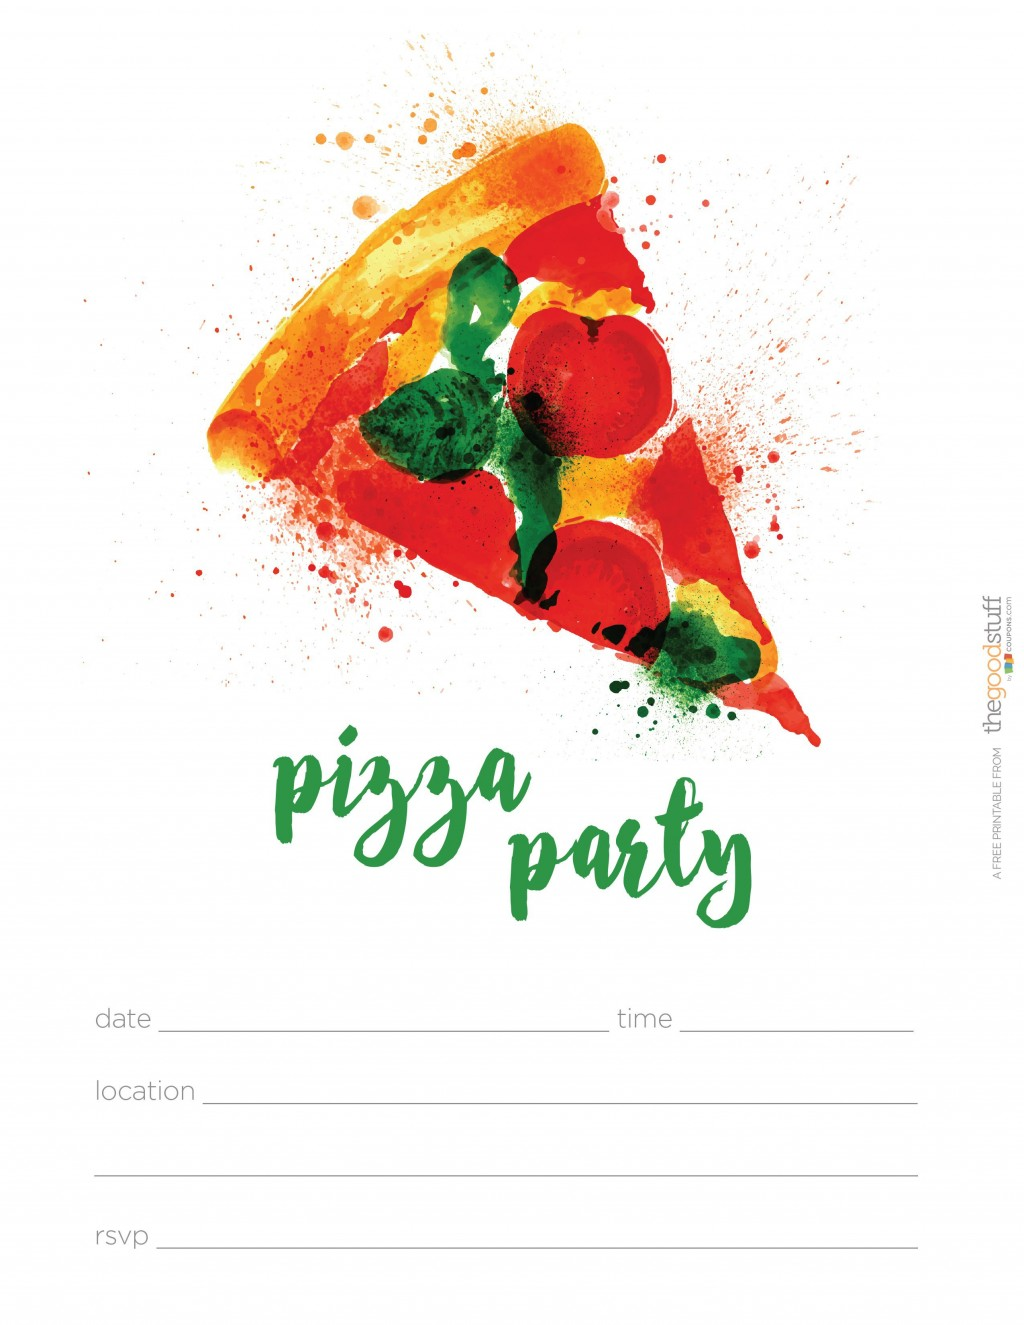 004 Phenomenal Pizza Party Invitation Template Free Idea  PrintableLarge